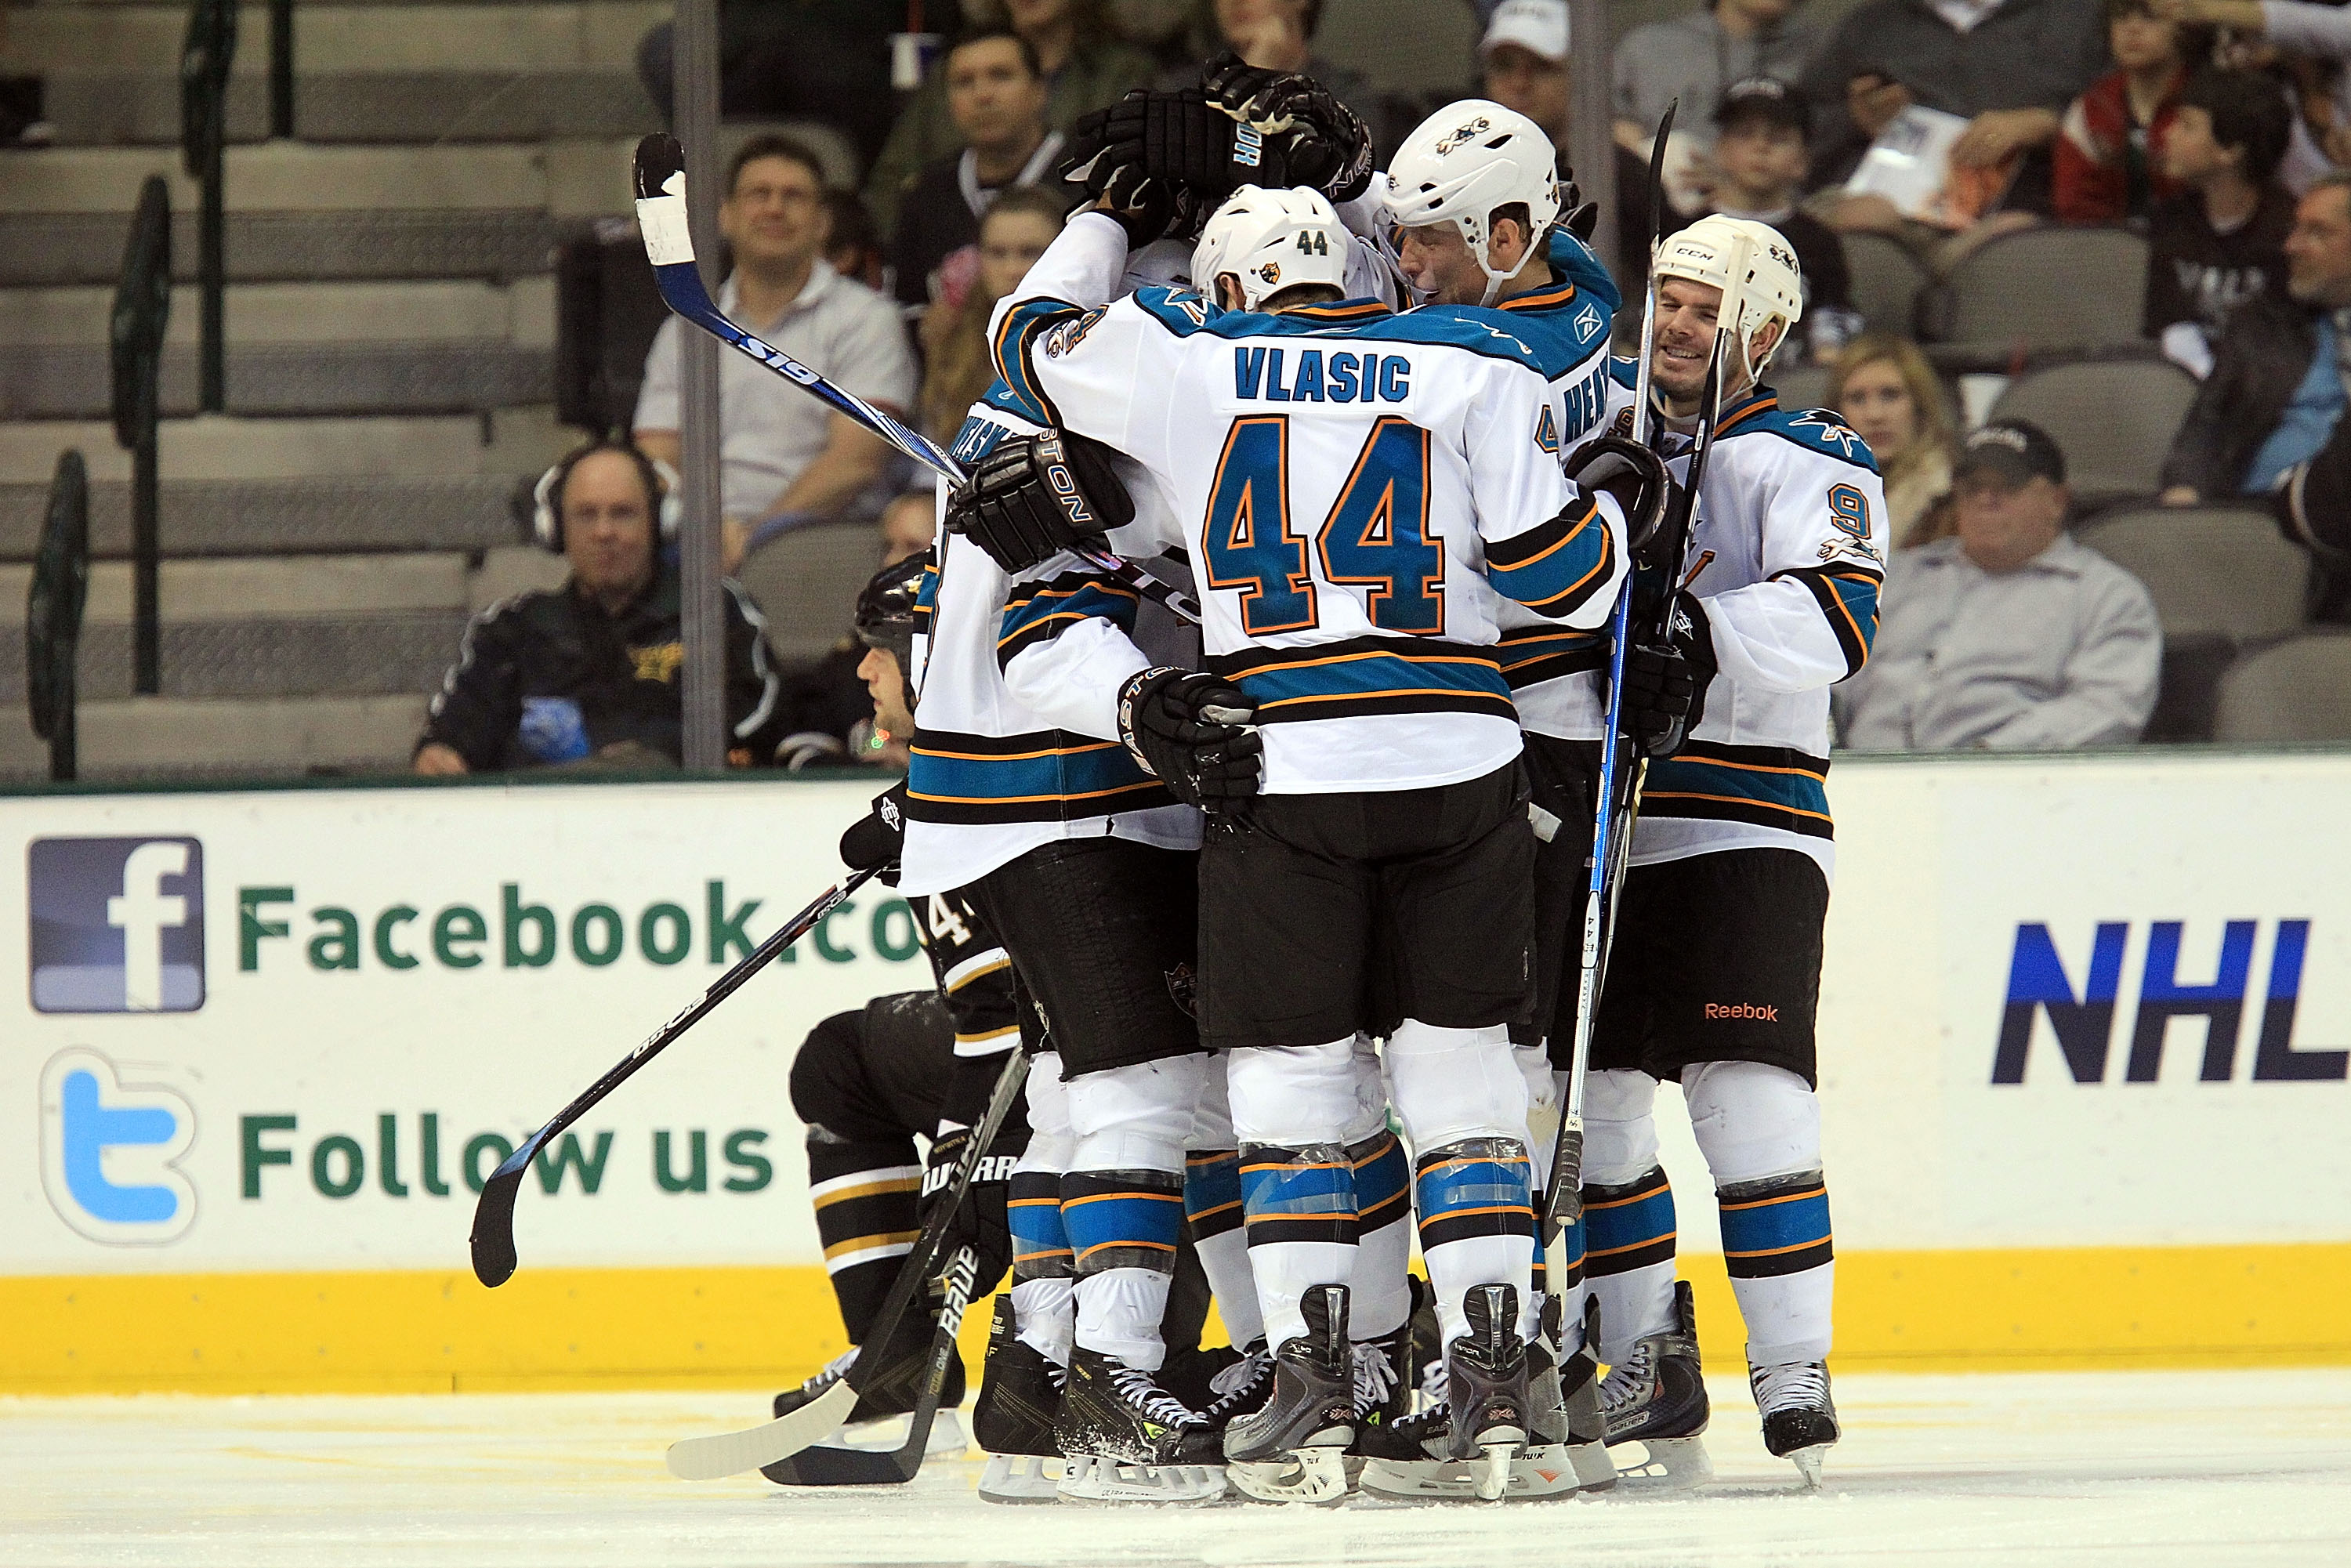 DALLAS, TX - MARCH 15:  The San Jose Sharks celebrate a goal against the Dallas Stars at American Airlines Center on March 15, 2011 in Dallas, Texas.  (Photo by Ronald Martinez/Getty Images)